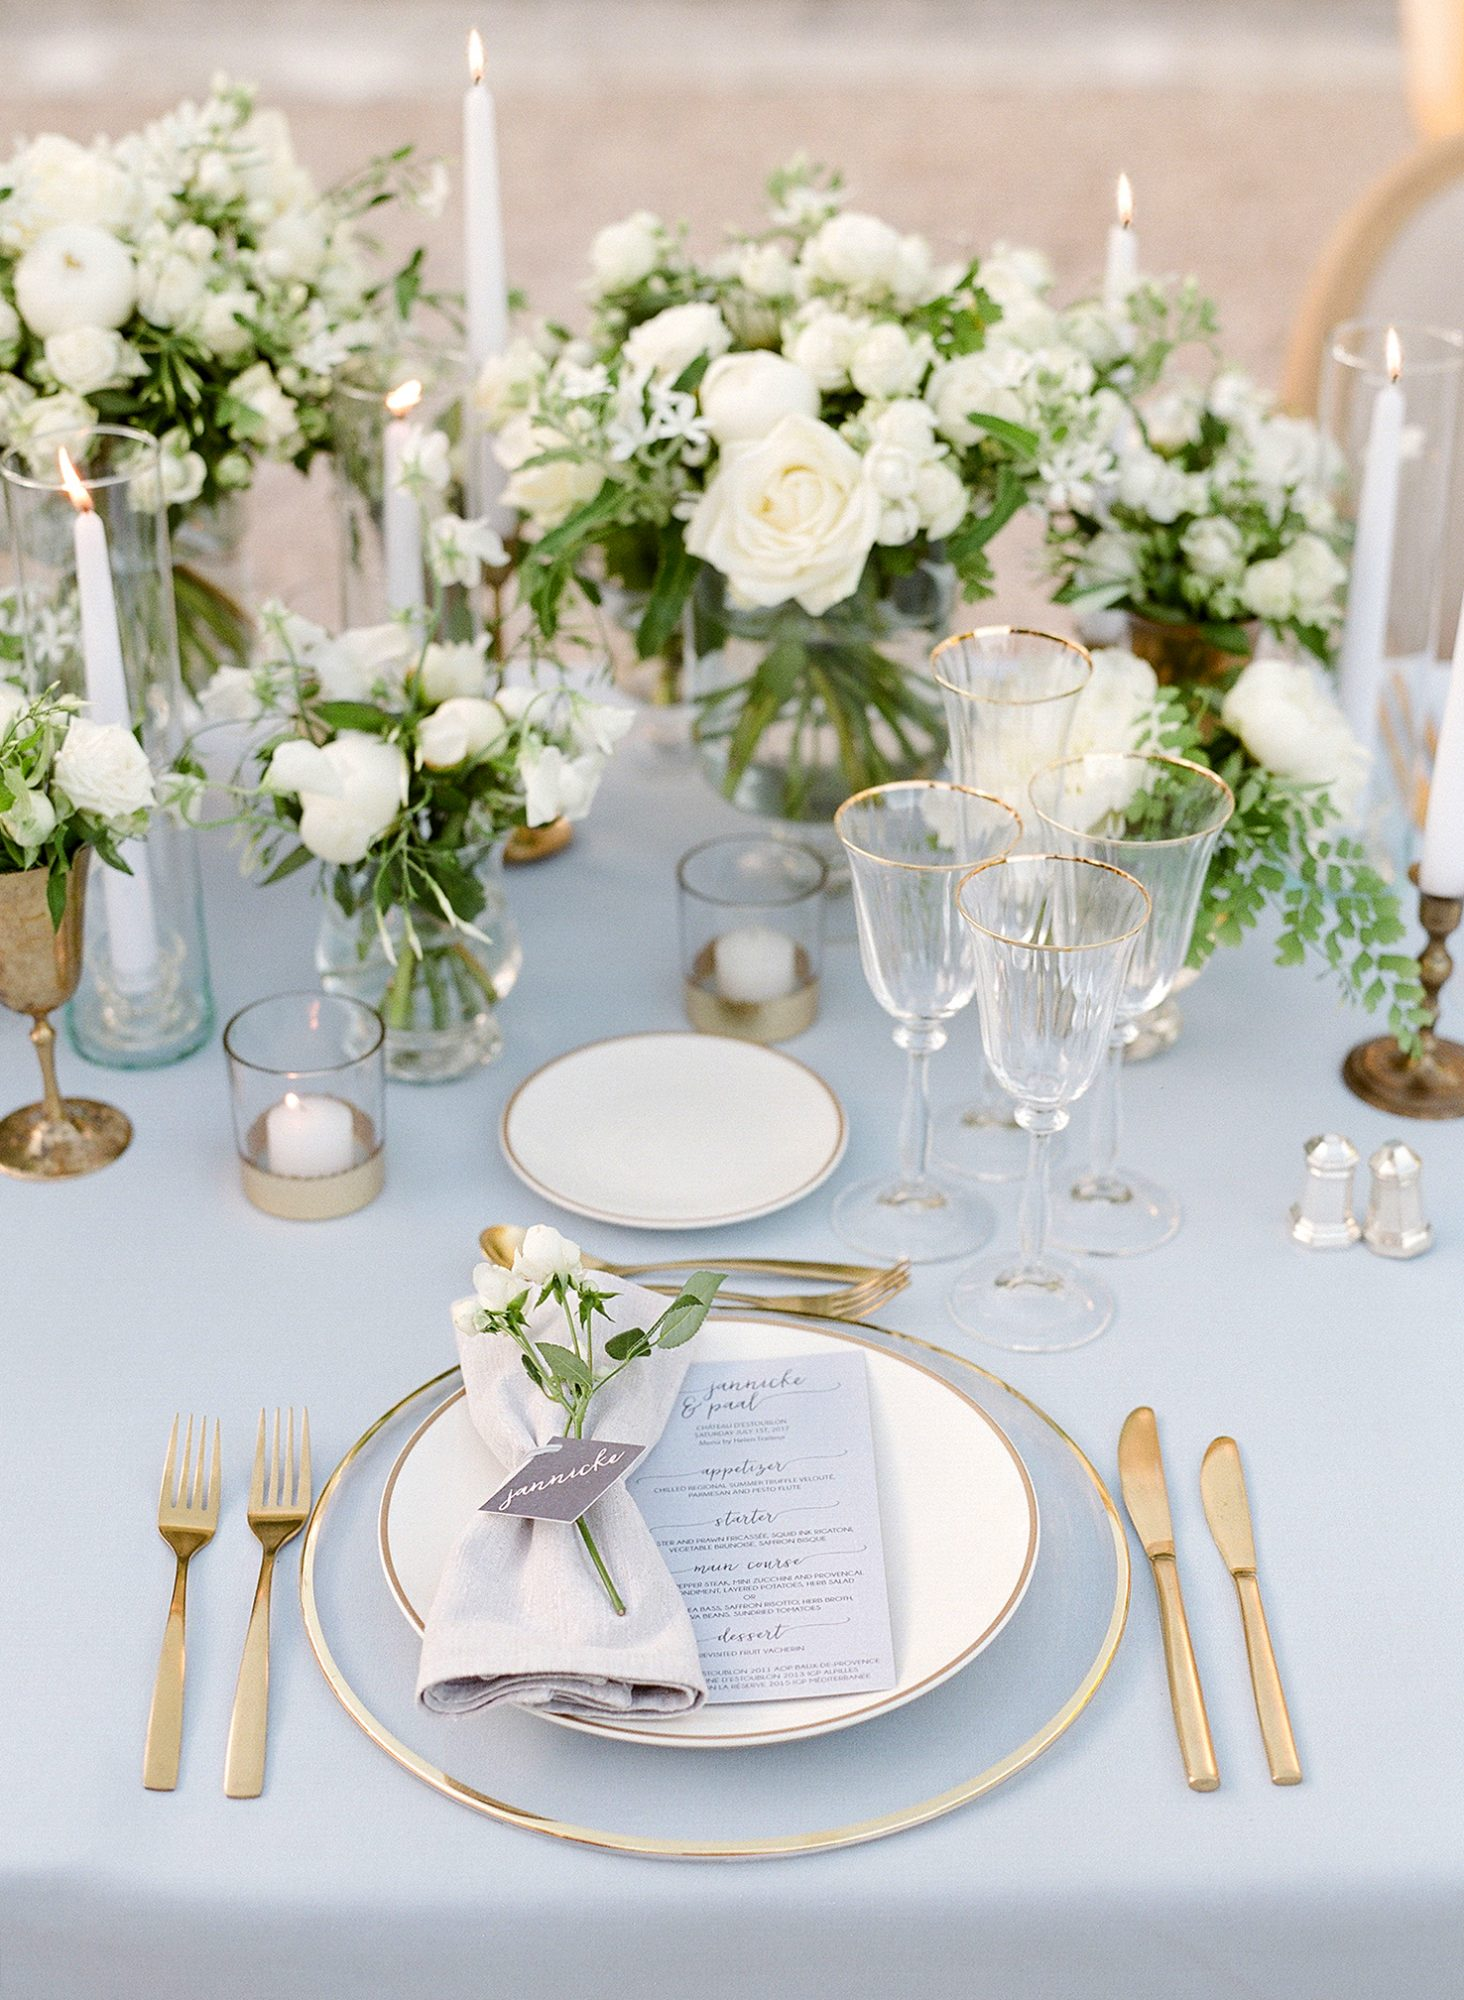 jannicke paal france wedding placesetting